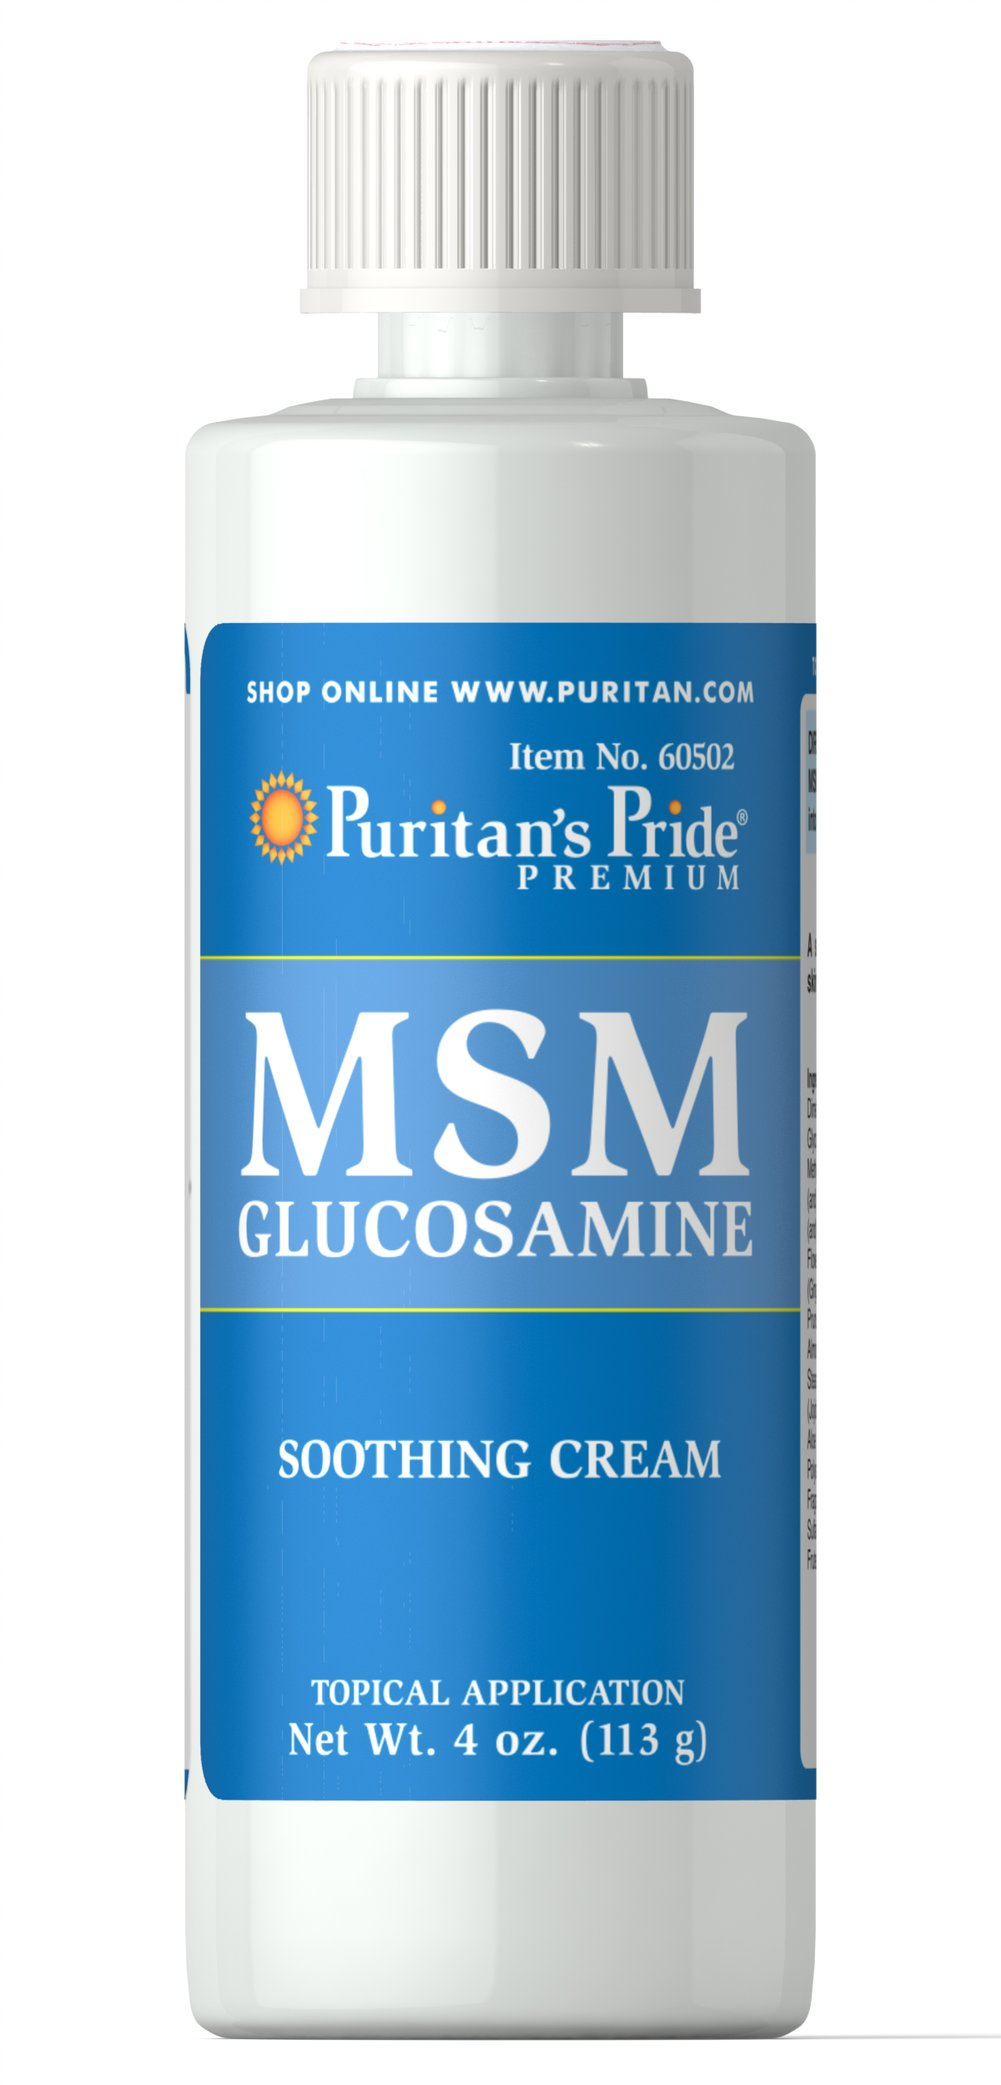 MSM Glucosamine Cream <p>A soothing cream for the skin and joints.  Gently massage <strong>MSM with Glucosamine Cream</strong> into the skin as required, or follow the advice of your health care professional.</p><p></p> 4 oz Cream  $14.39